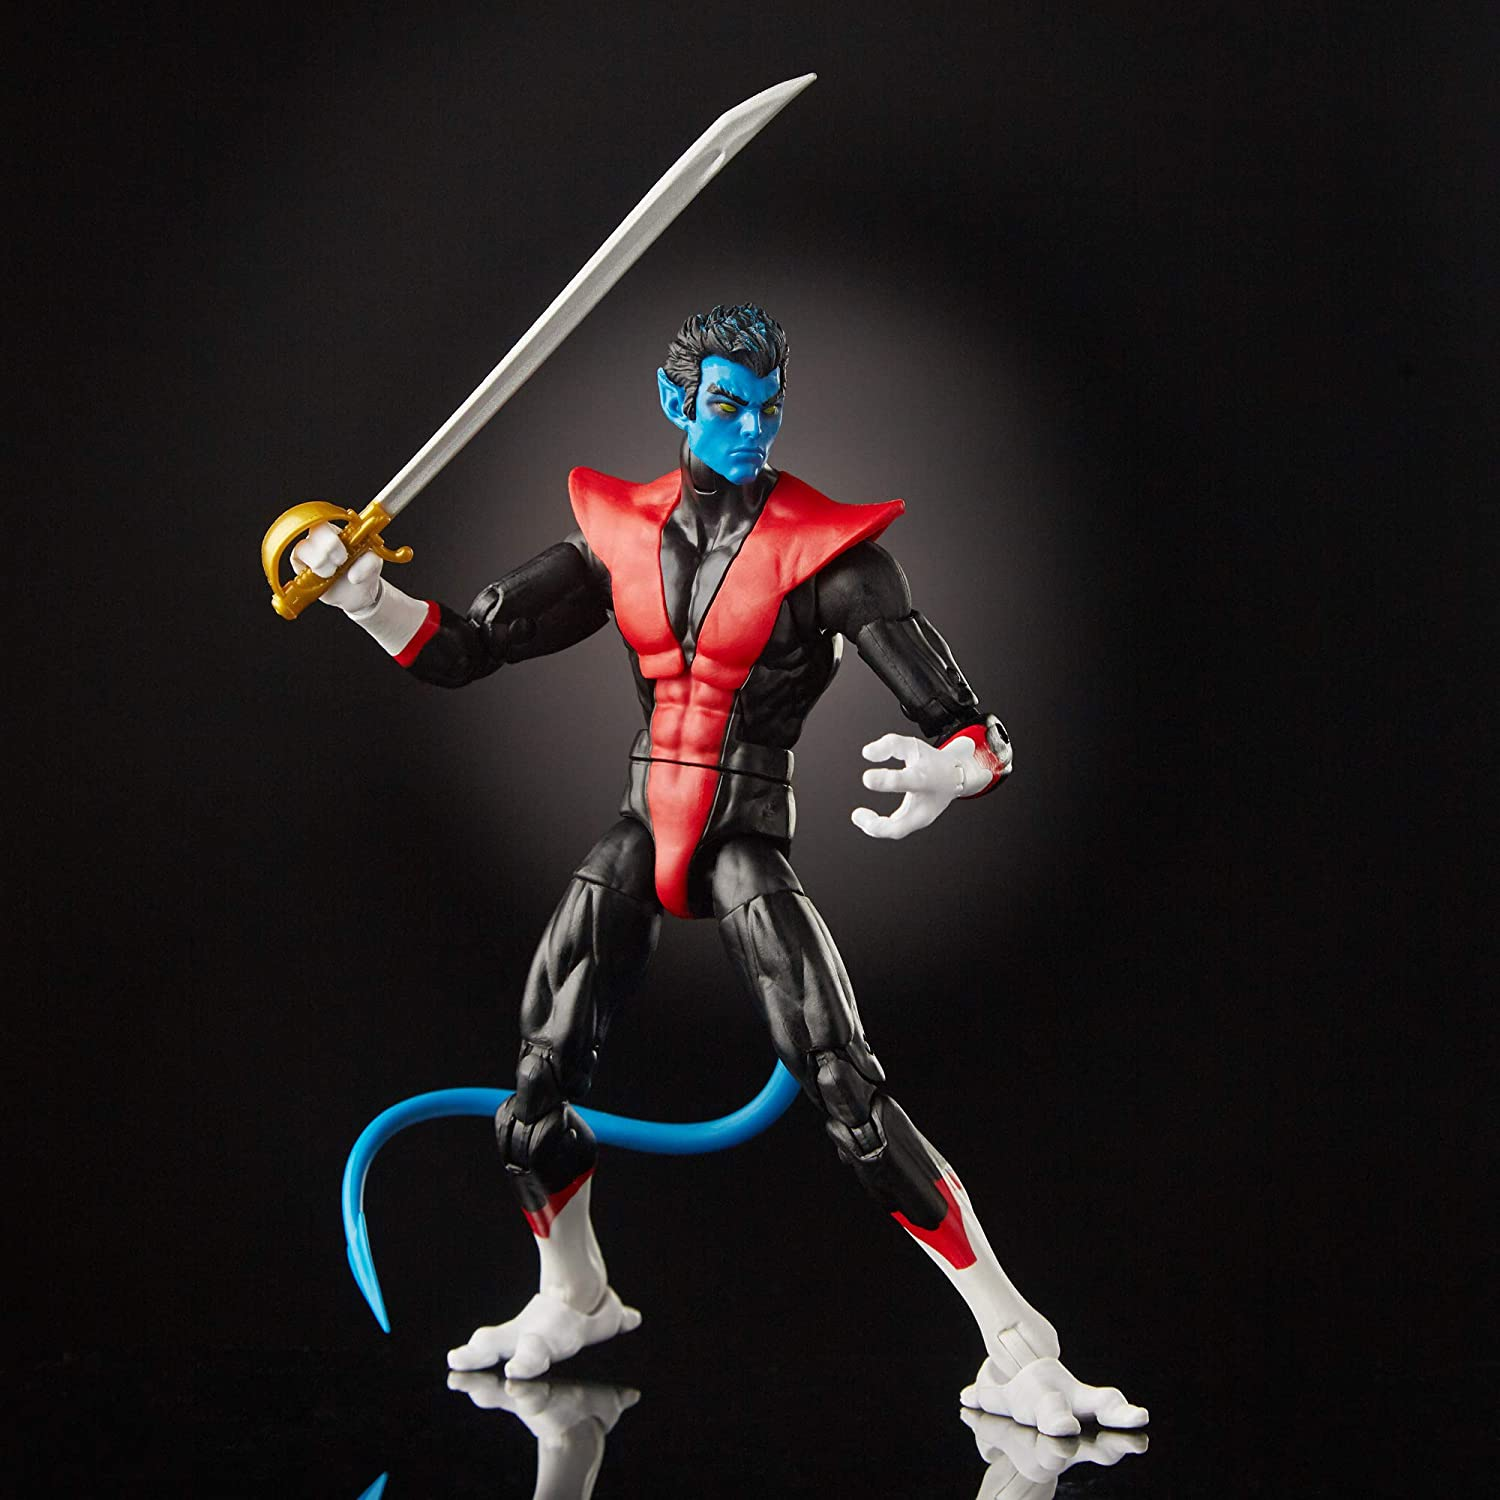 Marvel Legends E5302(E6115) Series 6-inch Collectible Action Figure Nightcrawler Toy